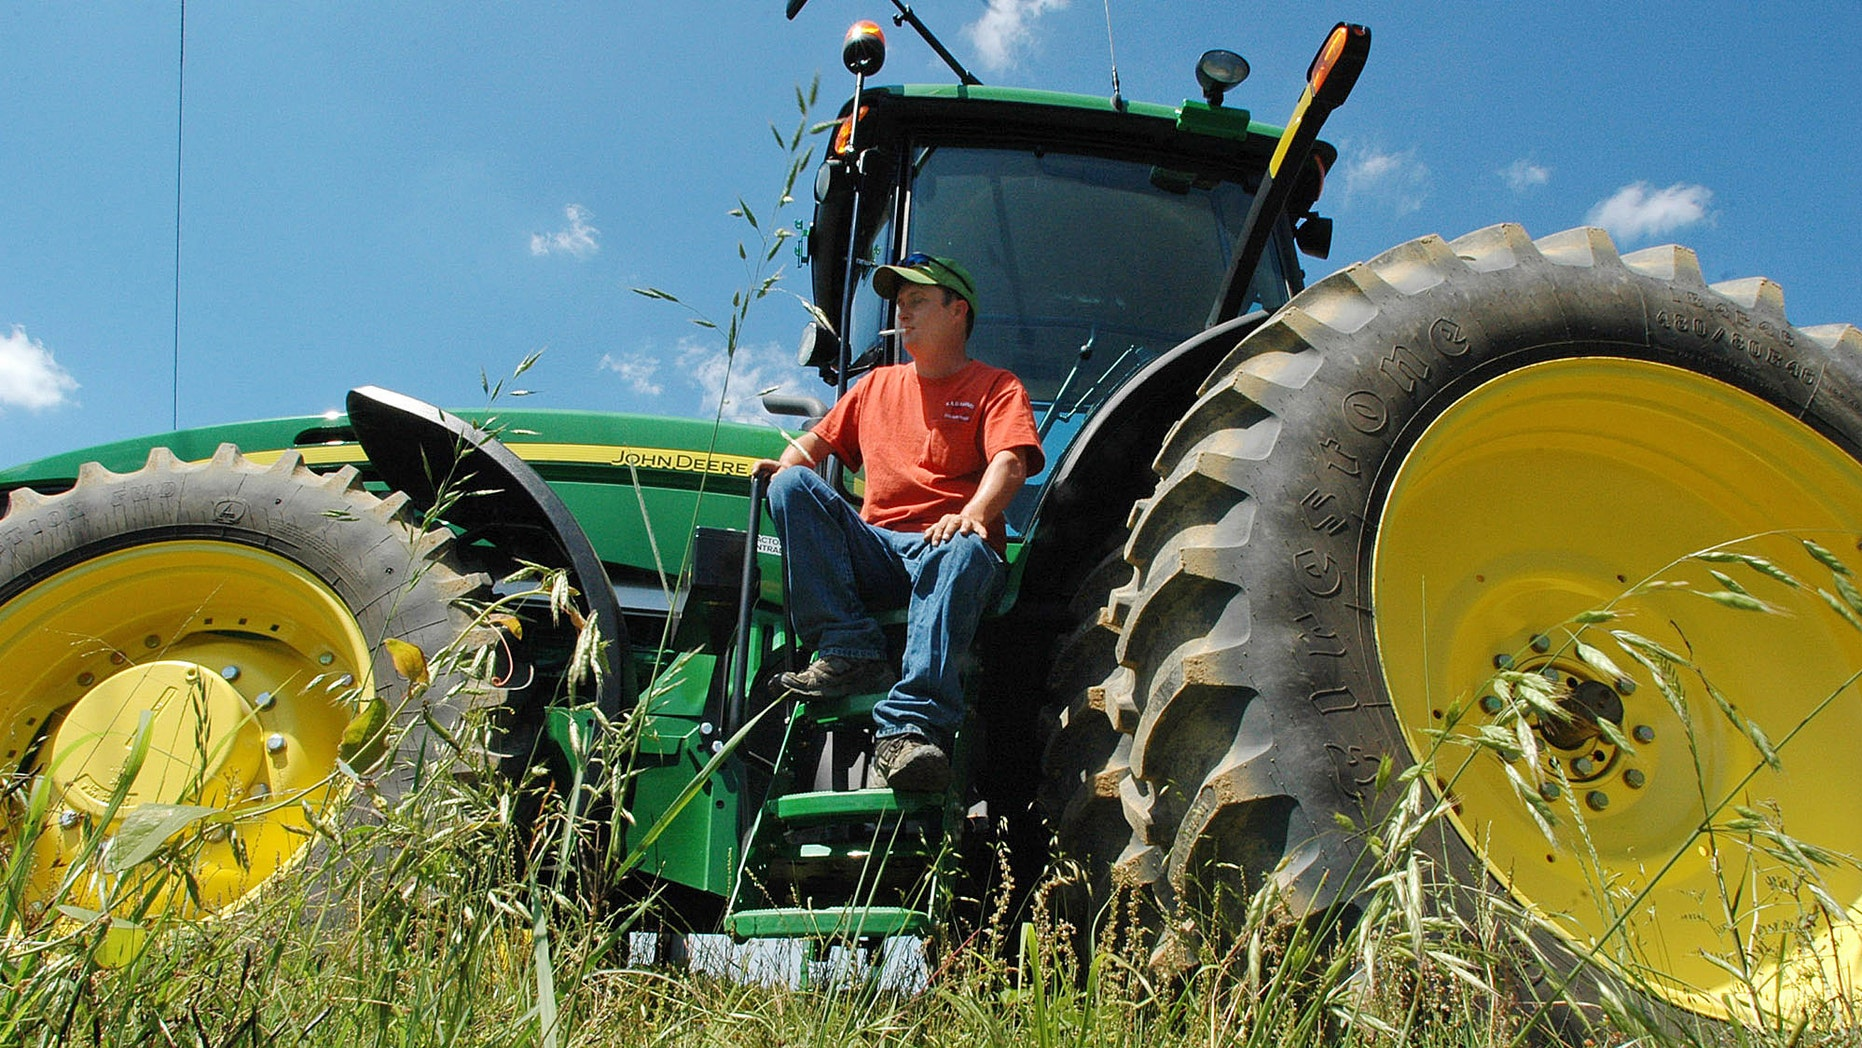 In a Thursday, May 10, 2012 photo, tomato farmer Keith Dickie sits on a tractor at his farm near Oneonta, Ala. (AP Photo/Jay Reeves)